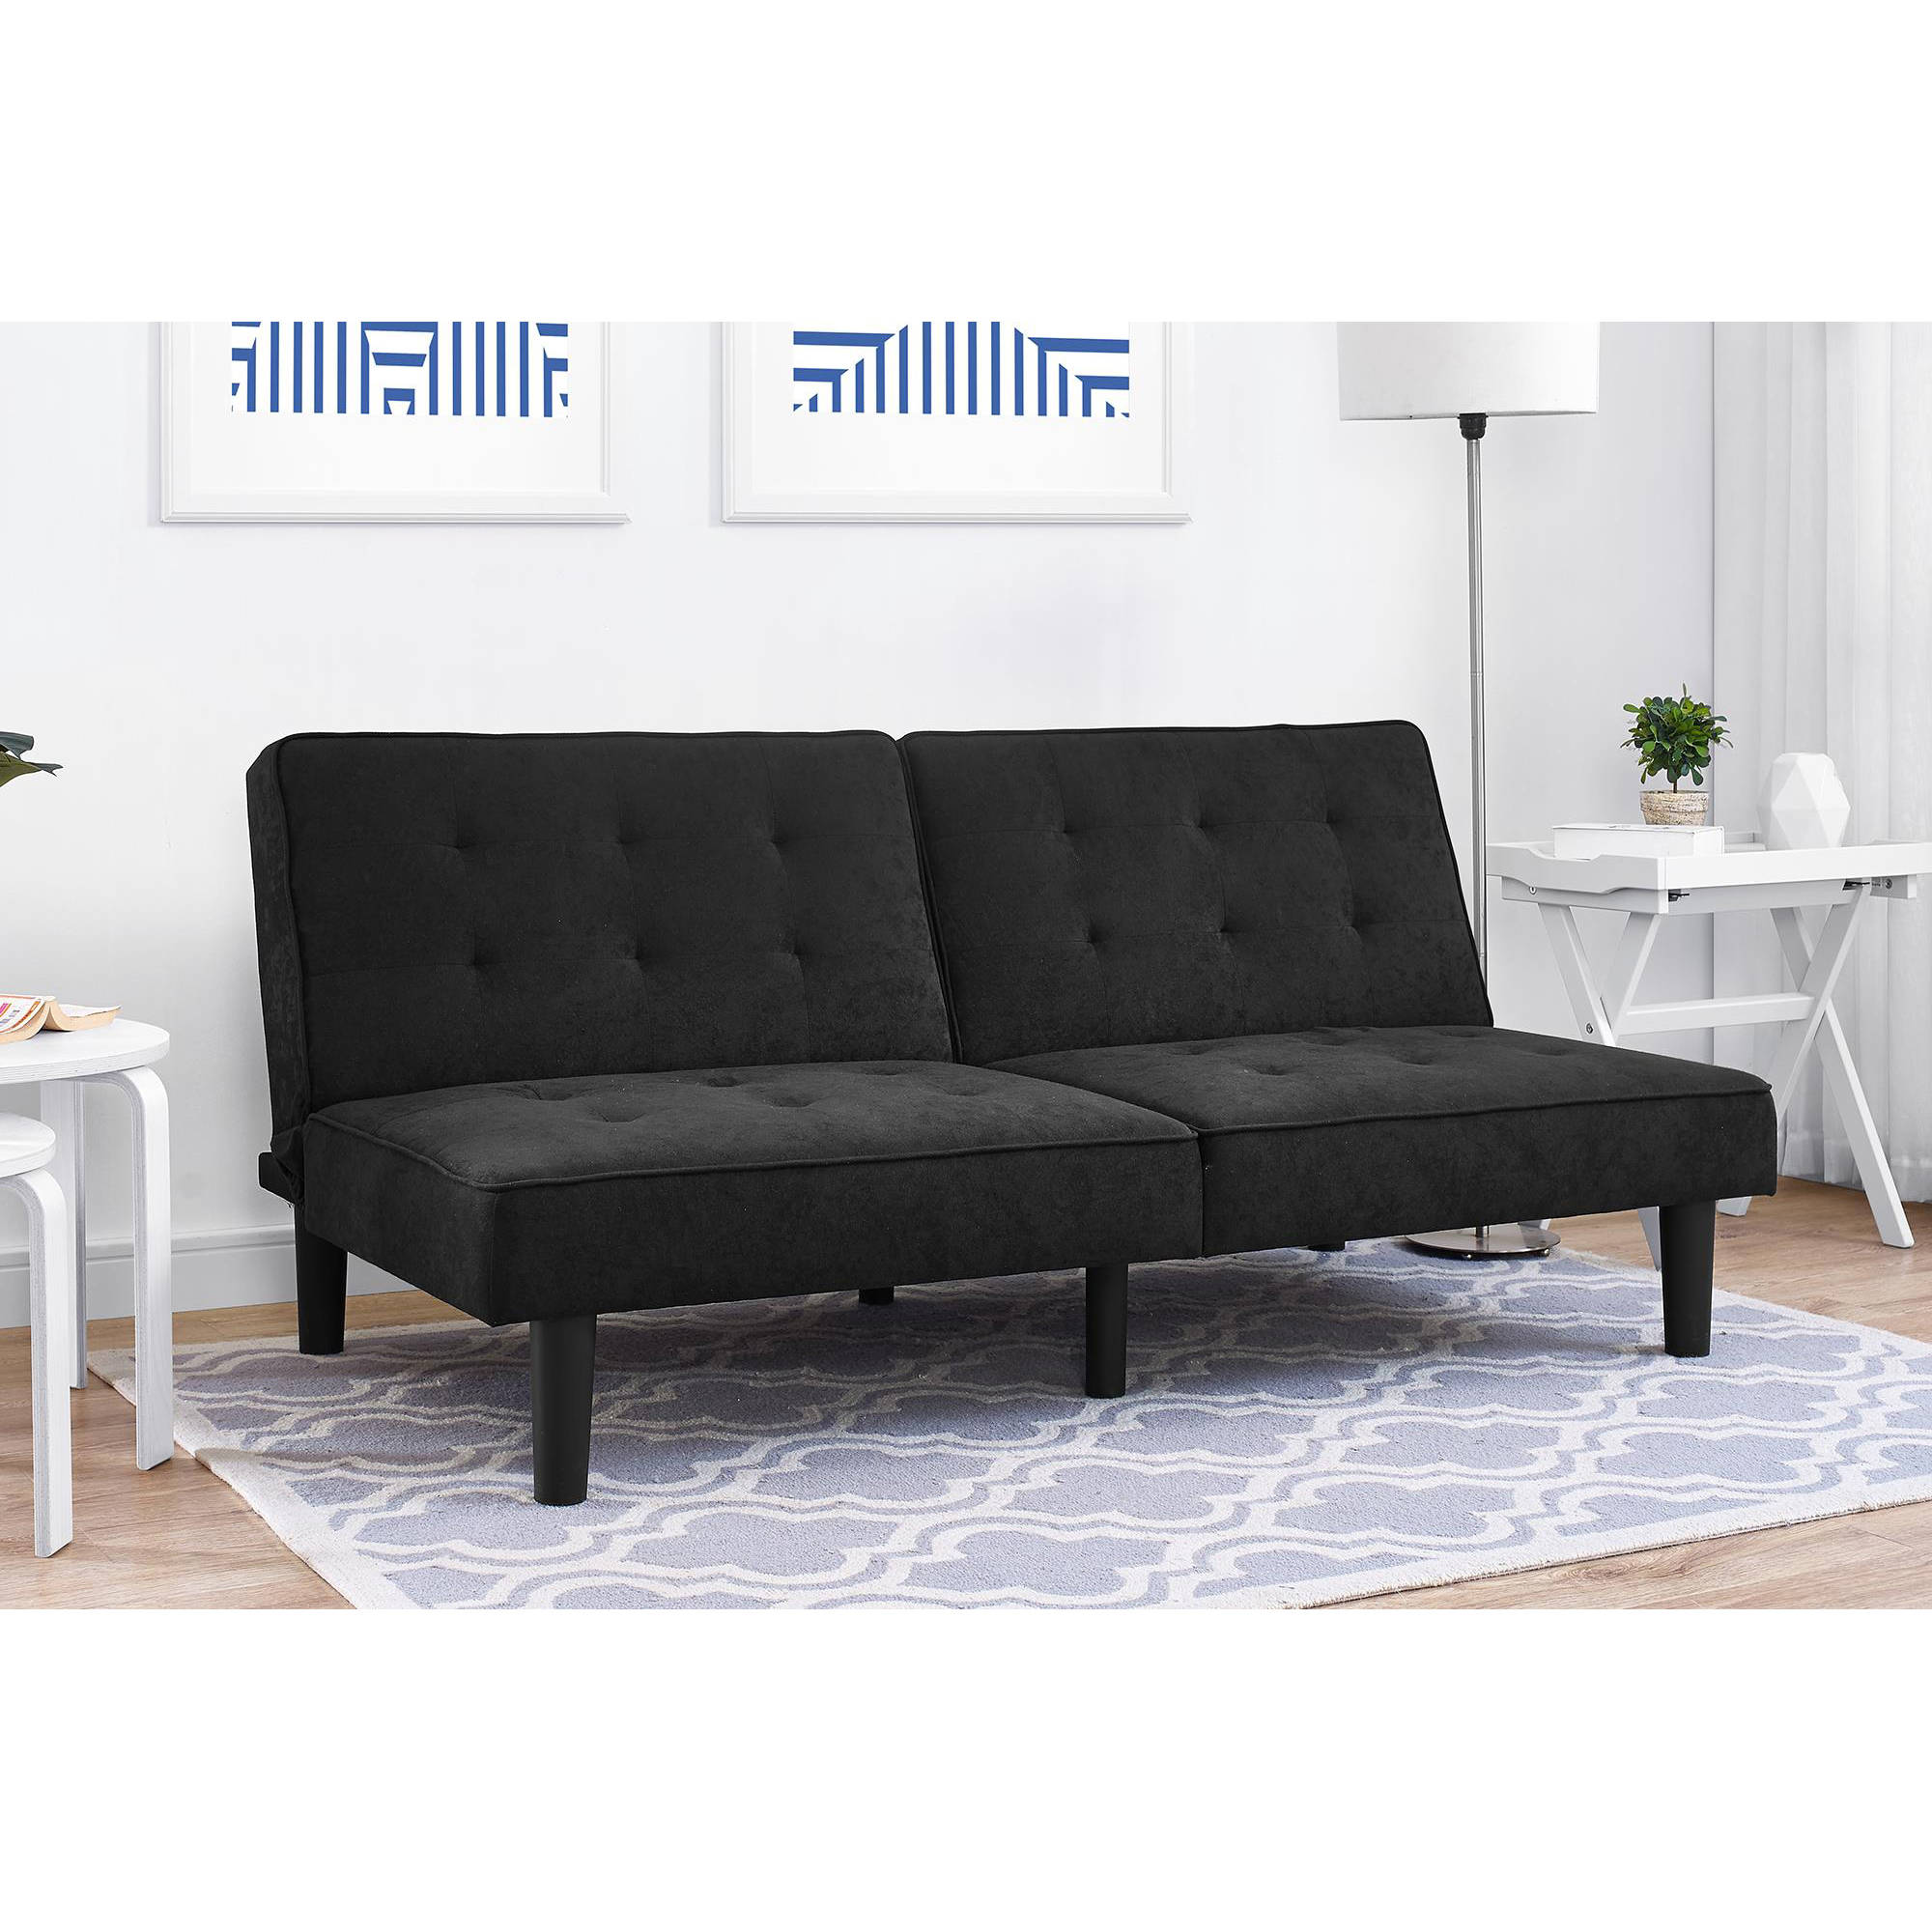 Mainstays Arlo Tufted Upholstered Futon Couch, Multiple Colors